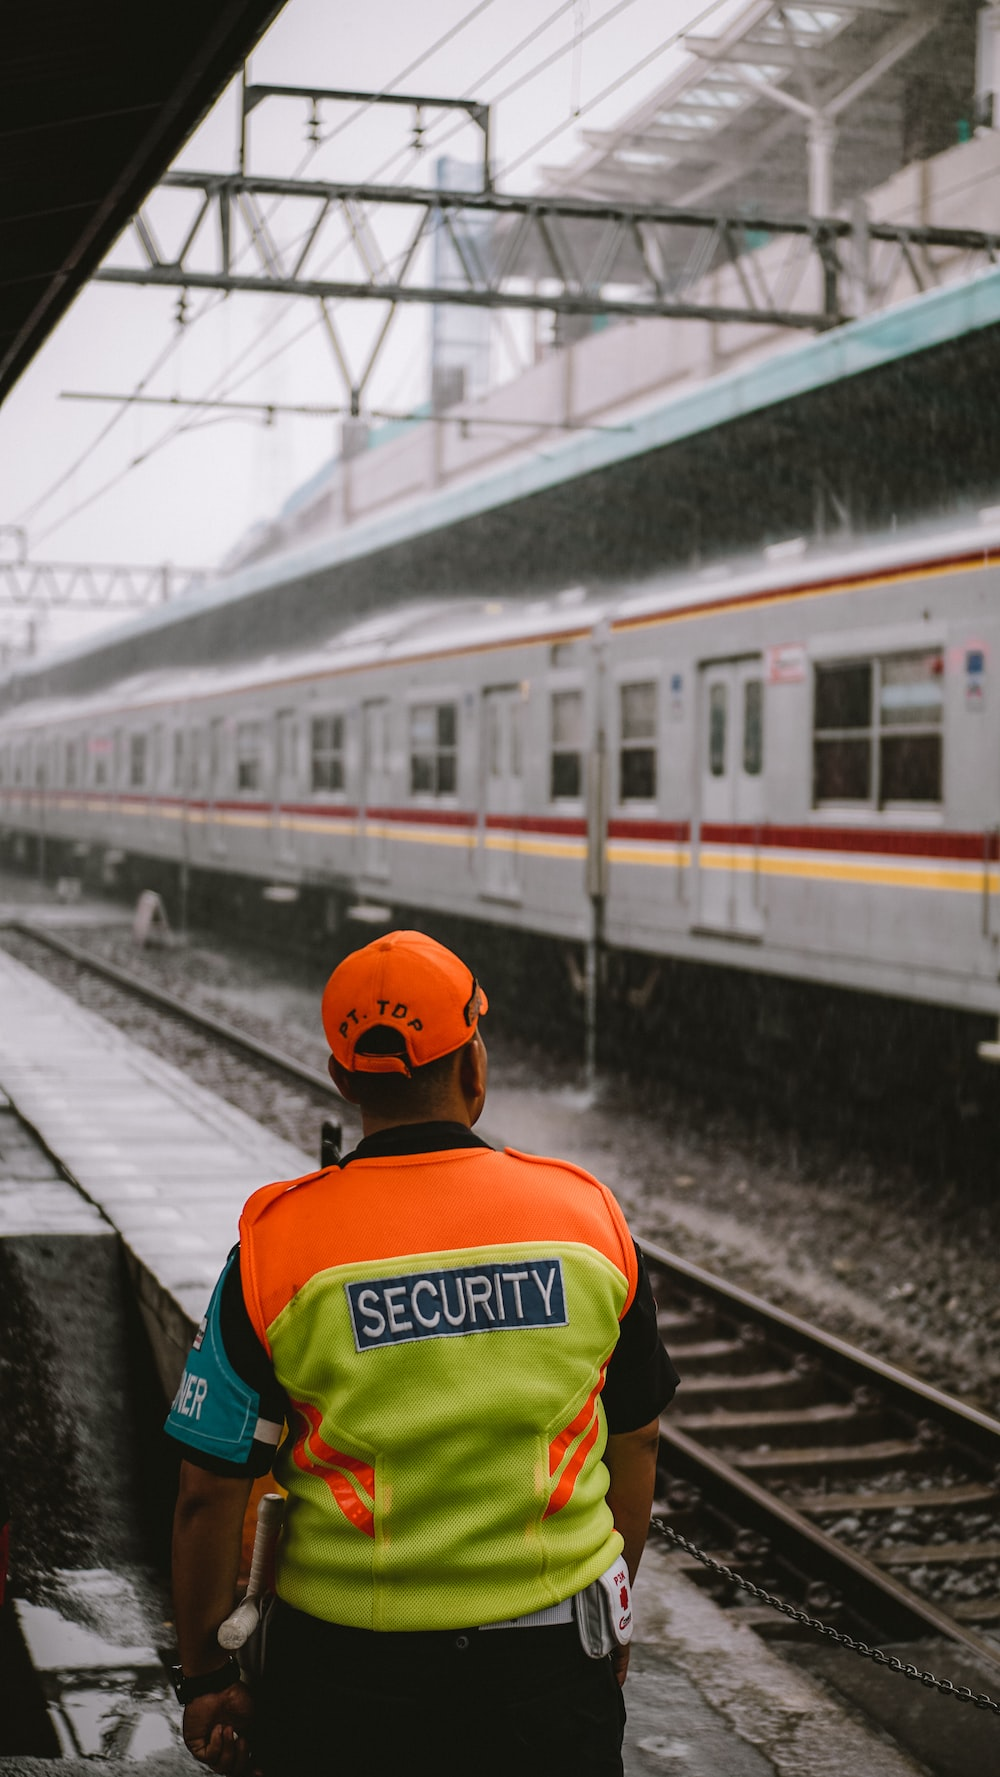 man in green and yellow shirt wearing orange cap standing on train station